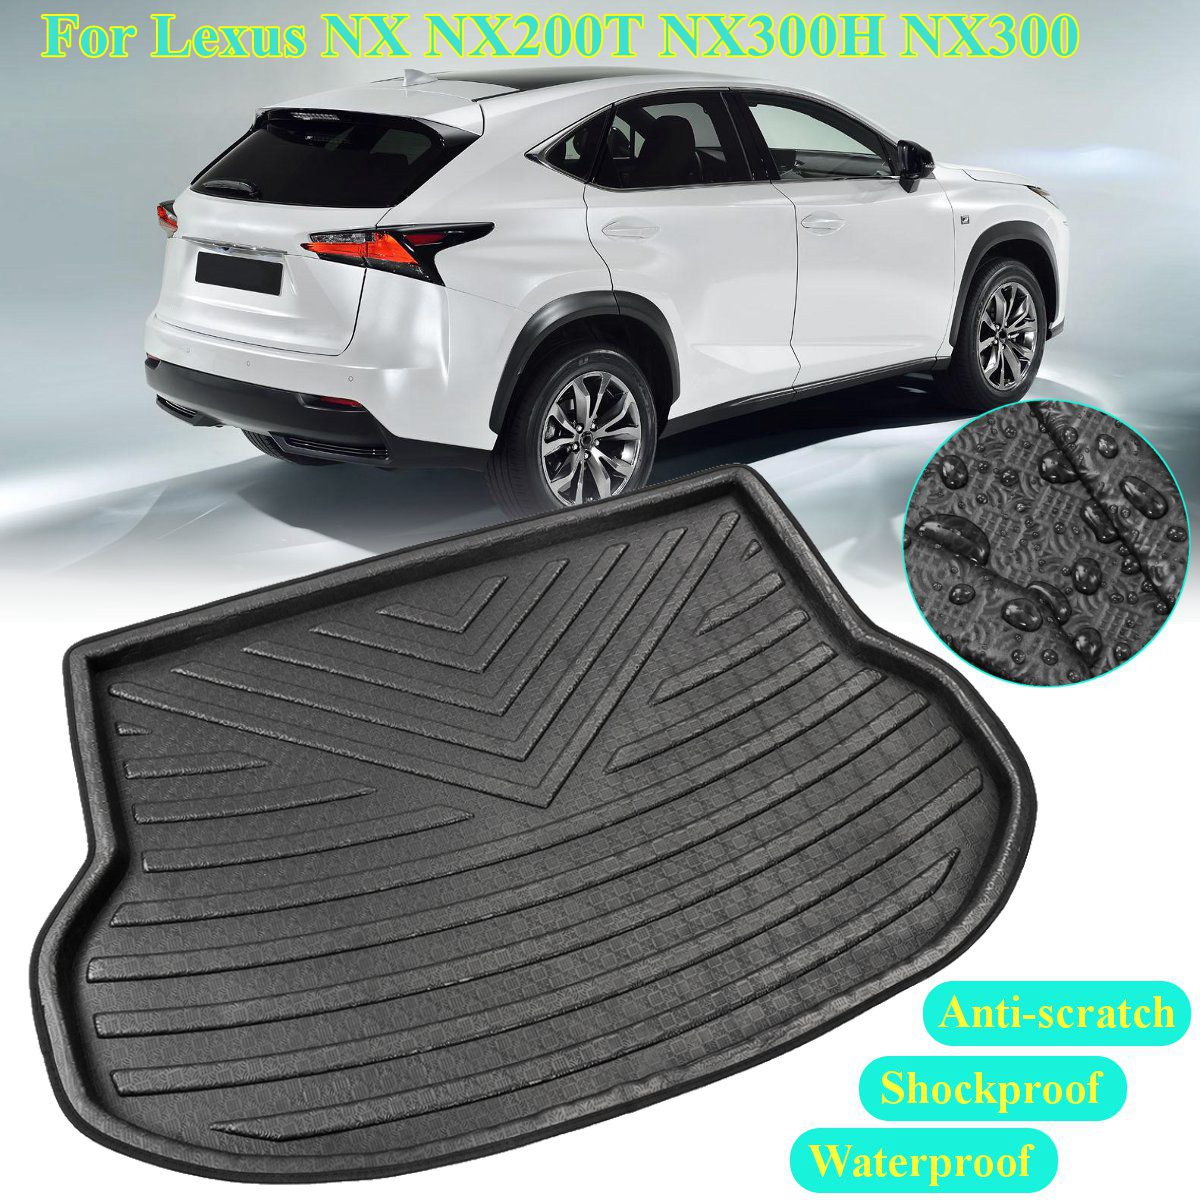 Rear Boot Liner Trunk Cargo Mat Tray Floor Carpet For Lexus NX NX200T NX300H NX300 2015 2016 2017 2018 Interior Mouldings Part